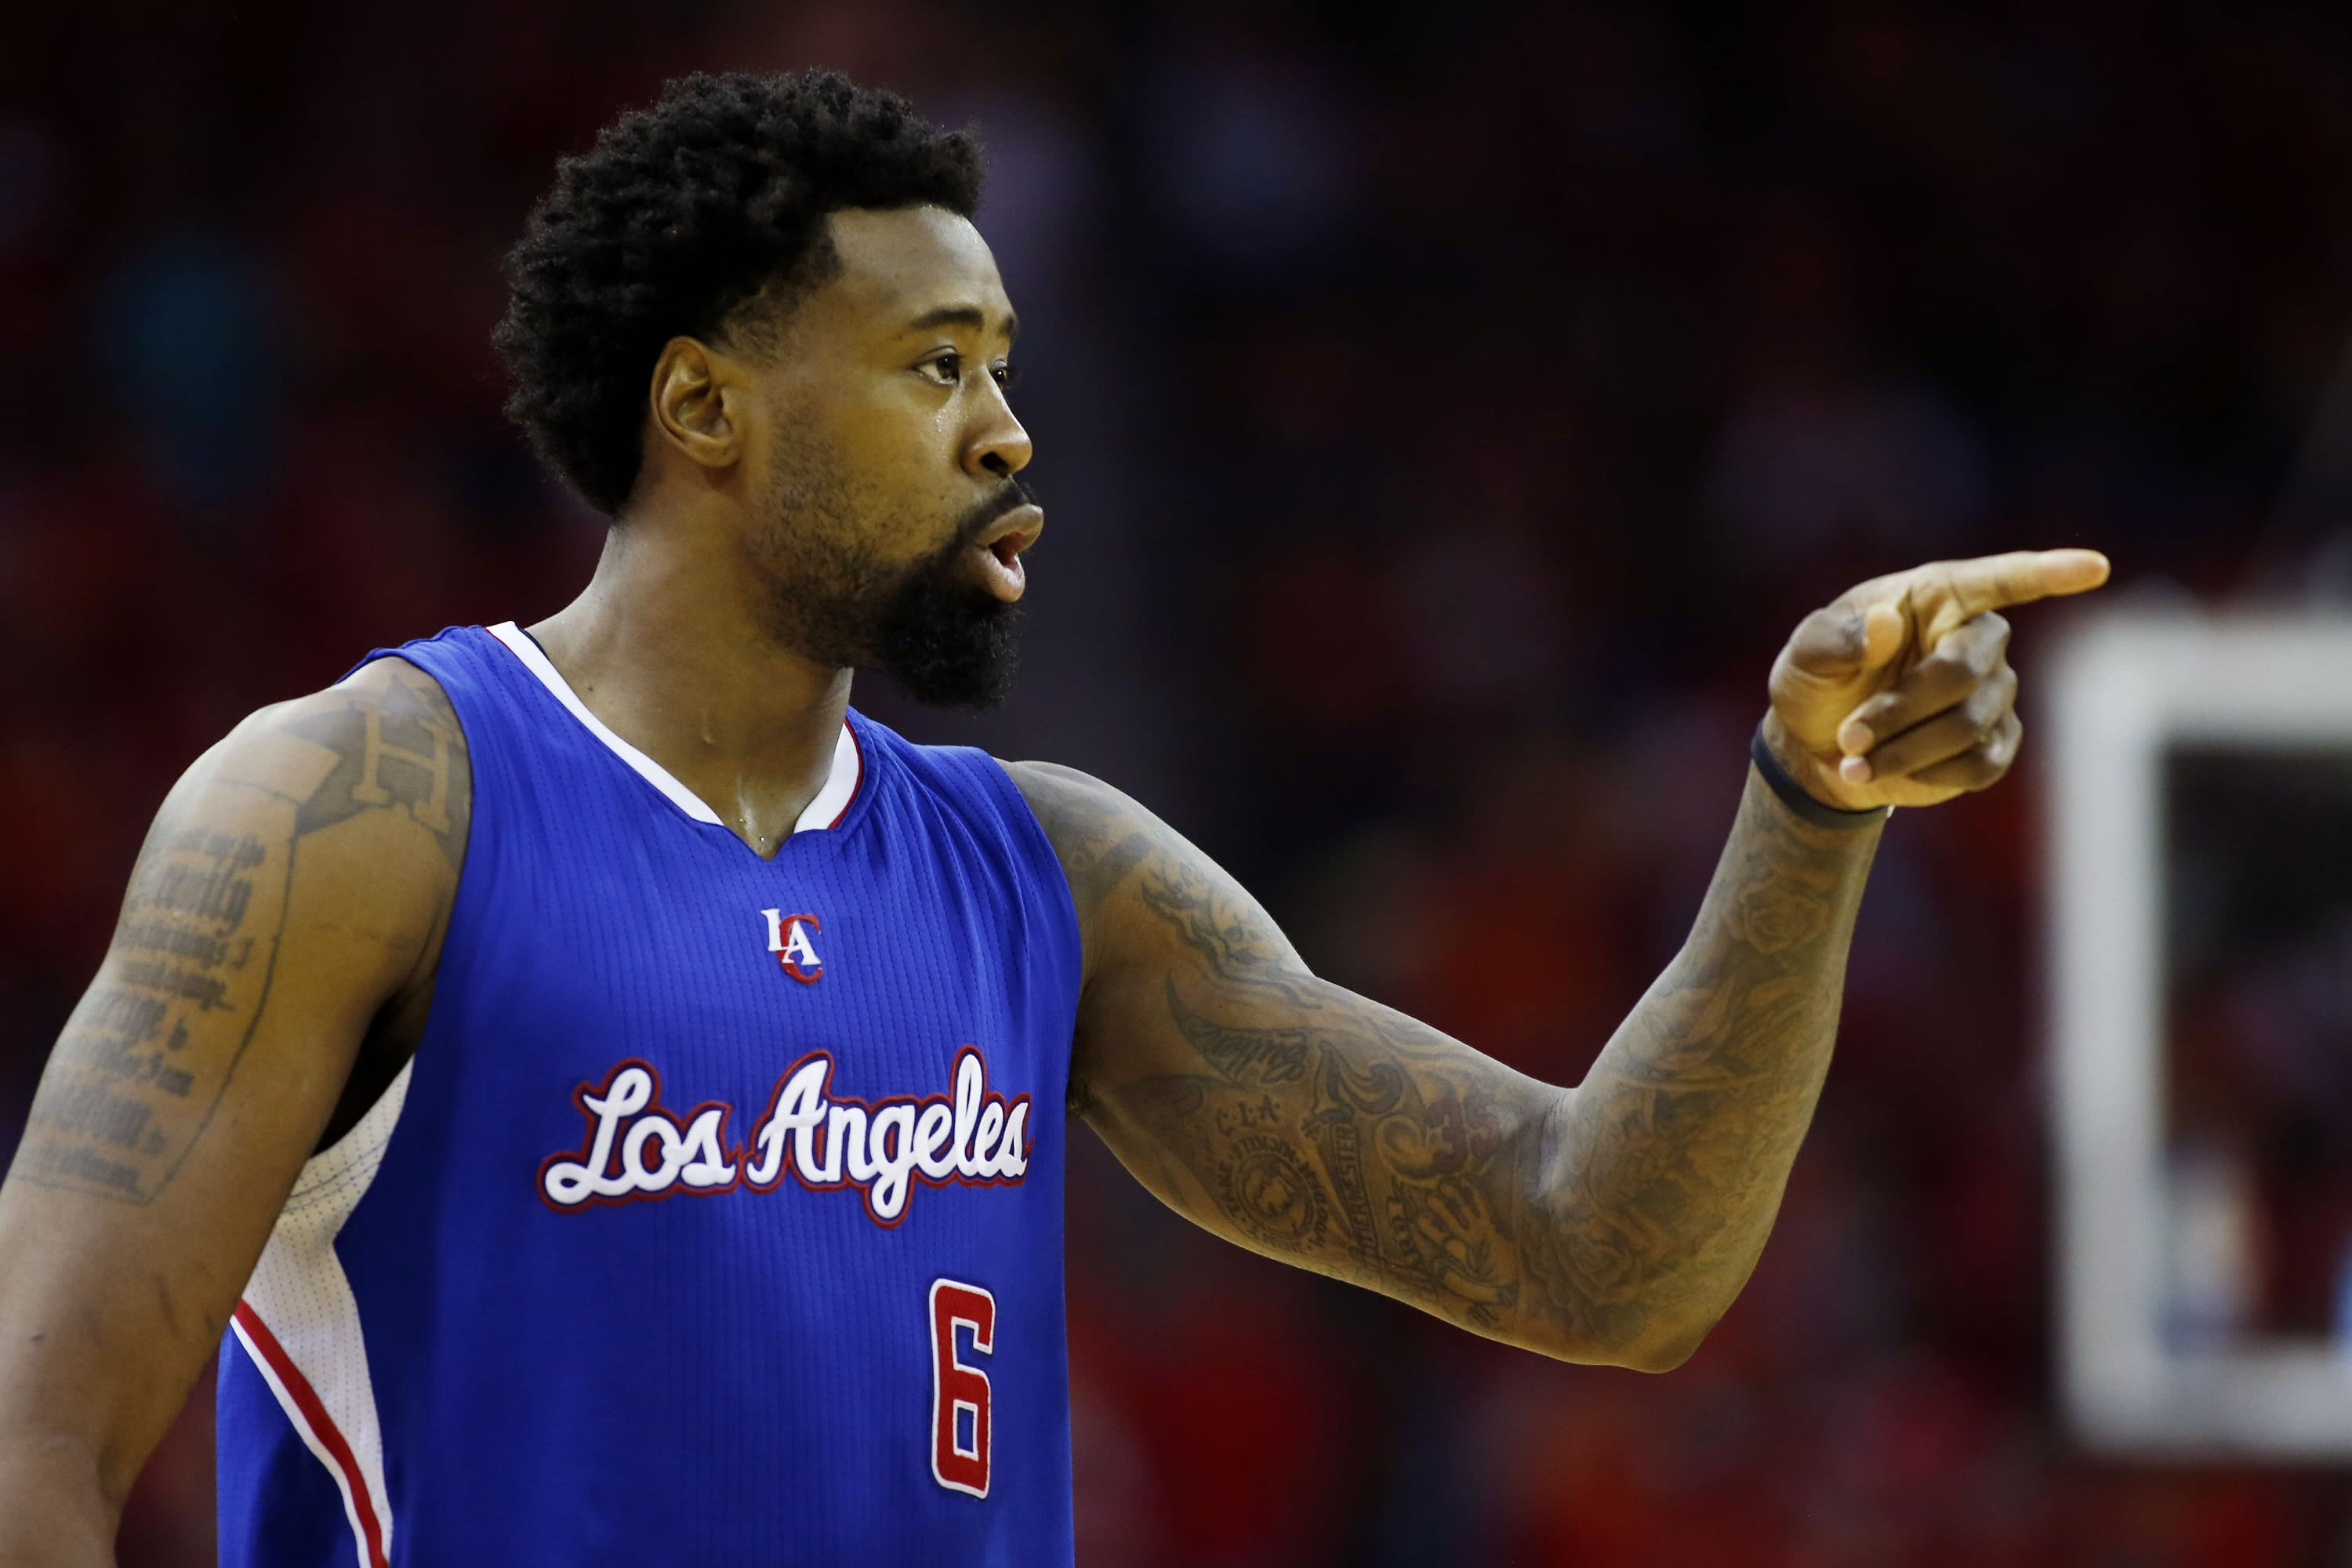 DeAndre Jordan leaves agent Dan Fegan after controversial summer